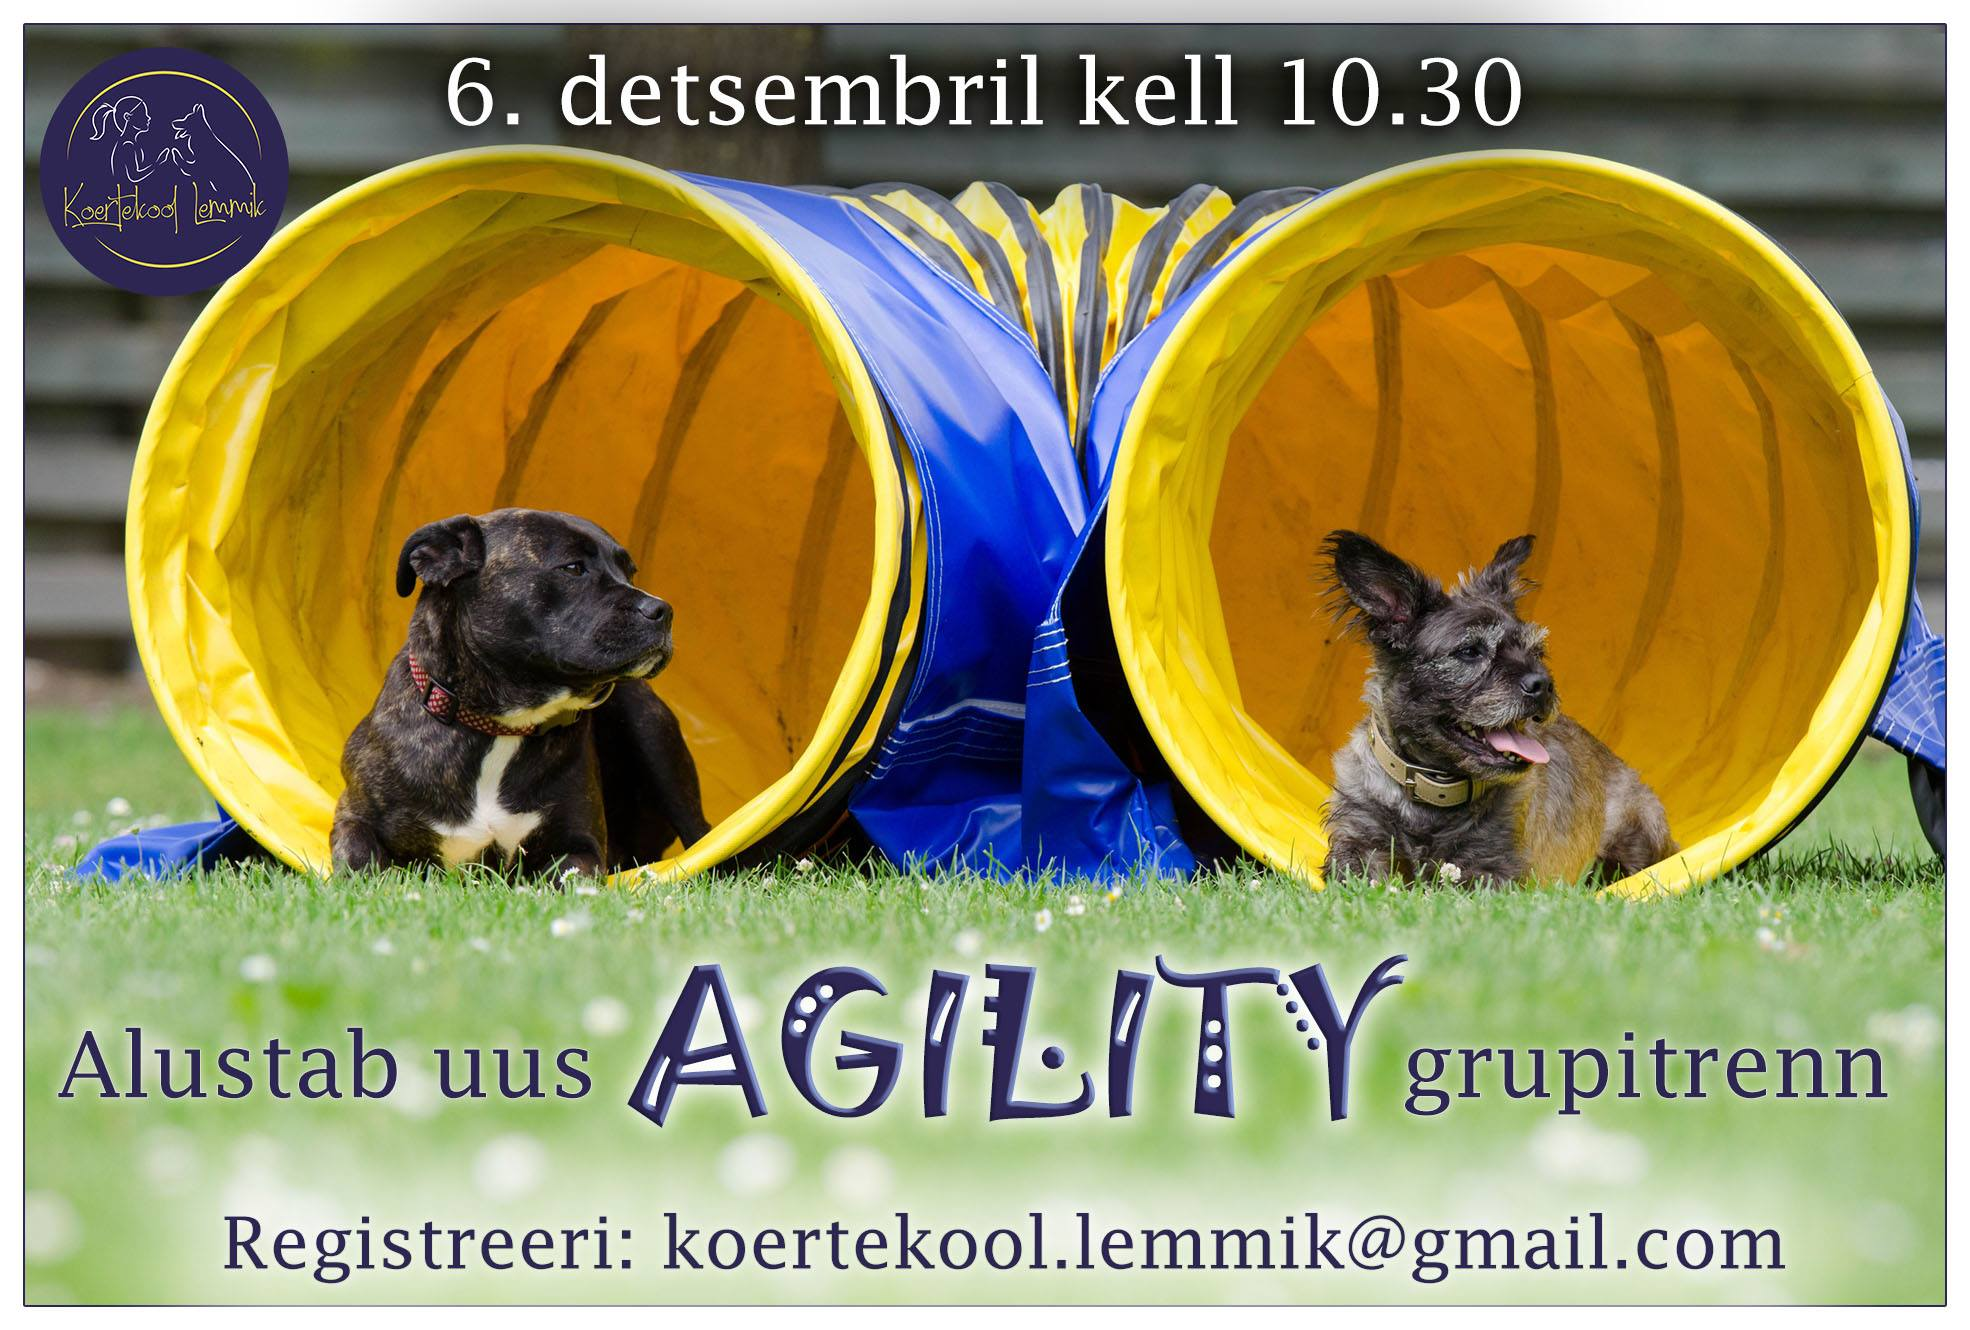 agility dets